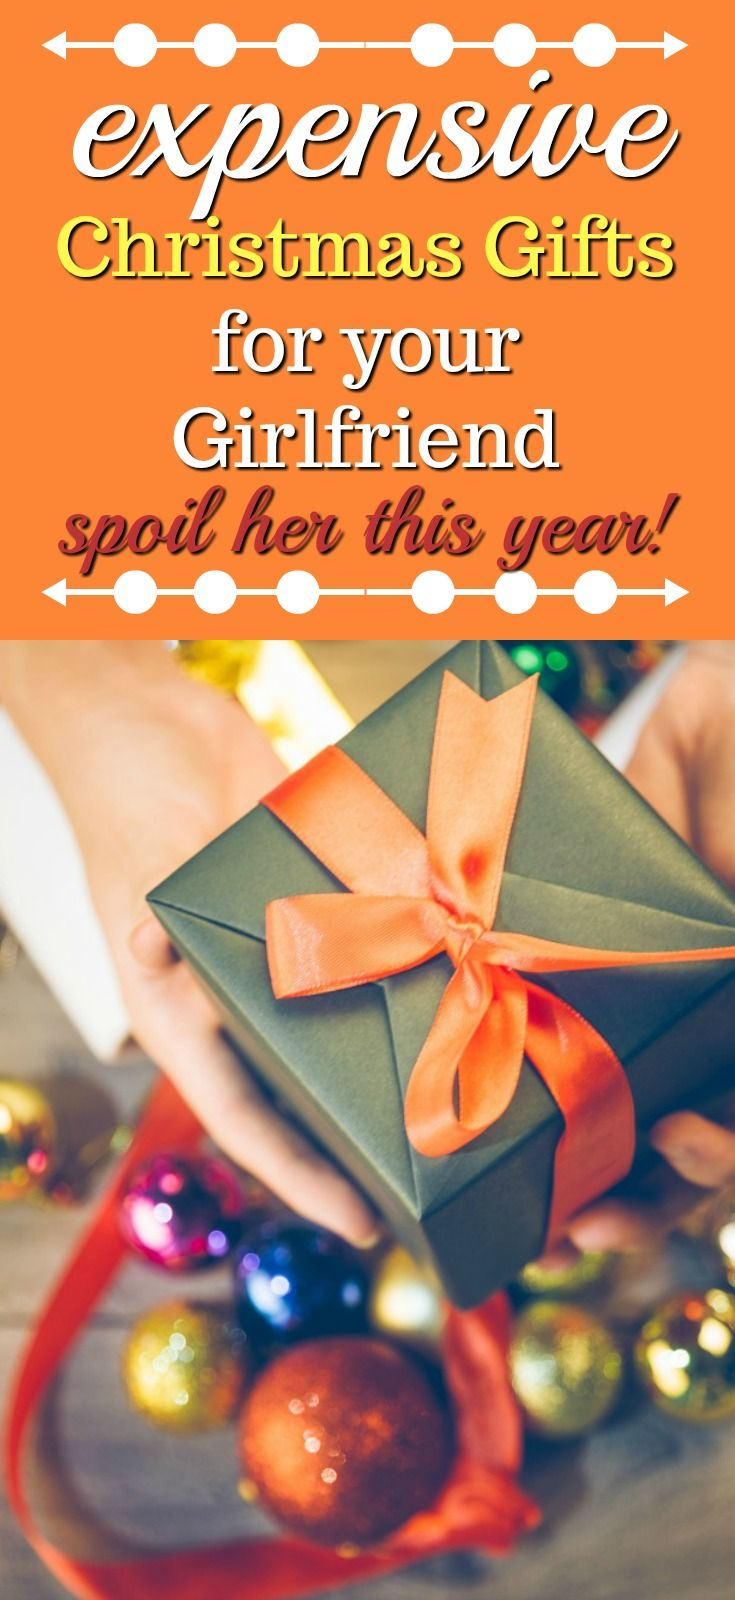 20 Expensive Christmas Gifts for Your Girlfriend | Christmas gifts ...